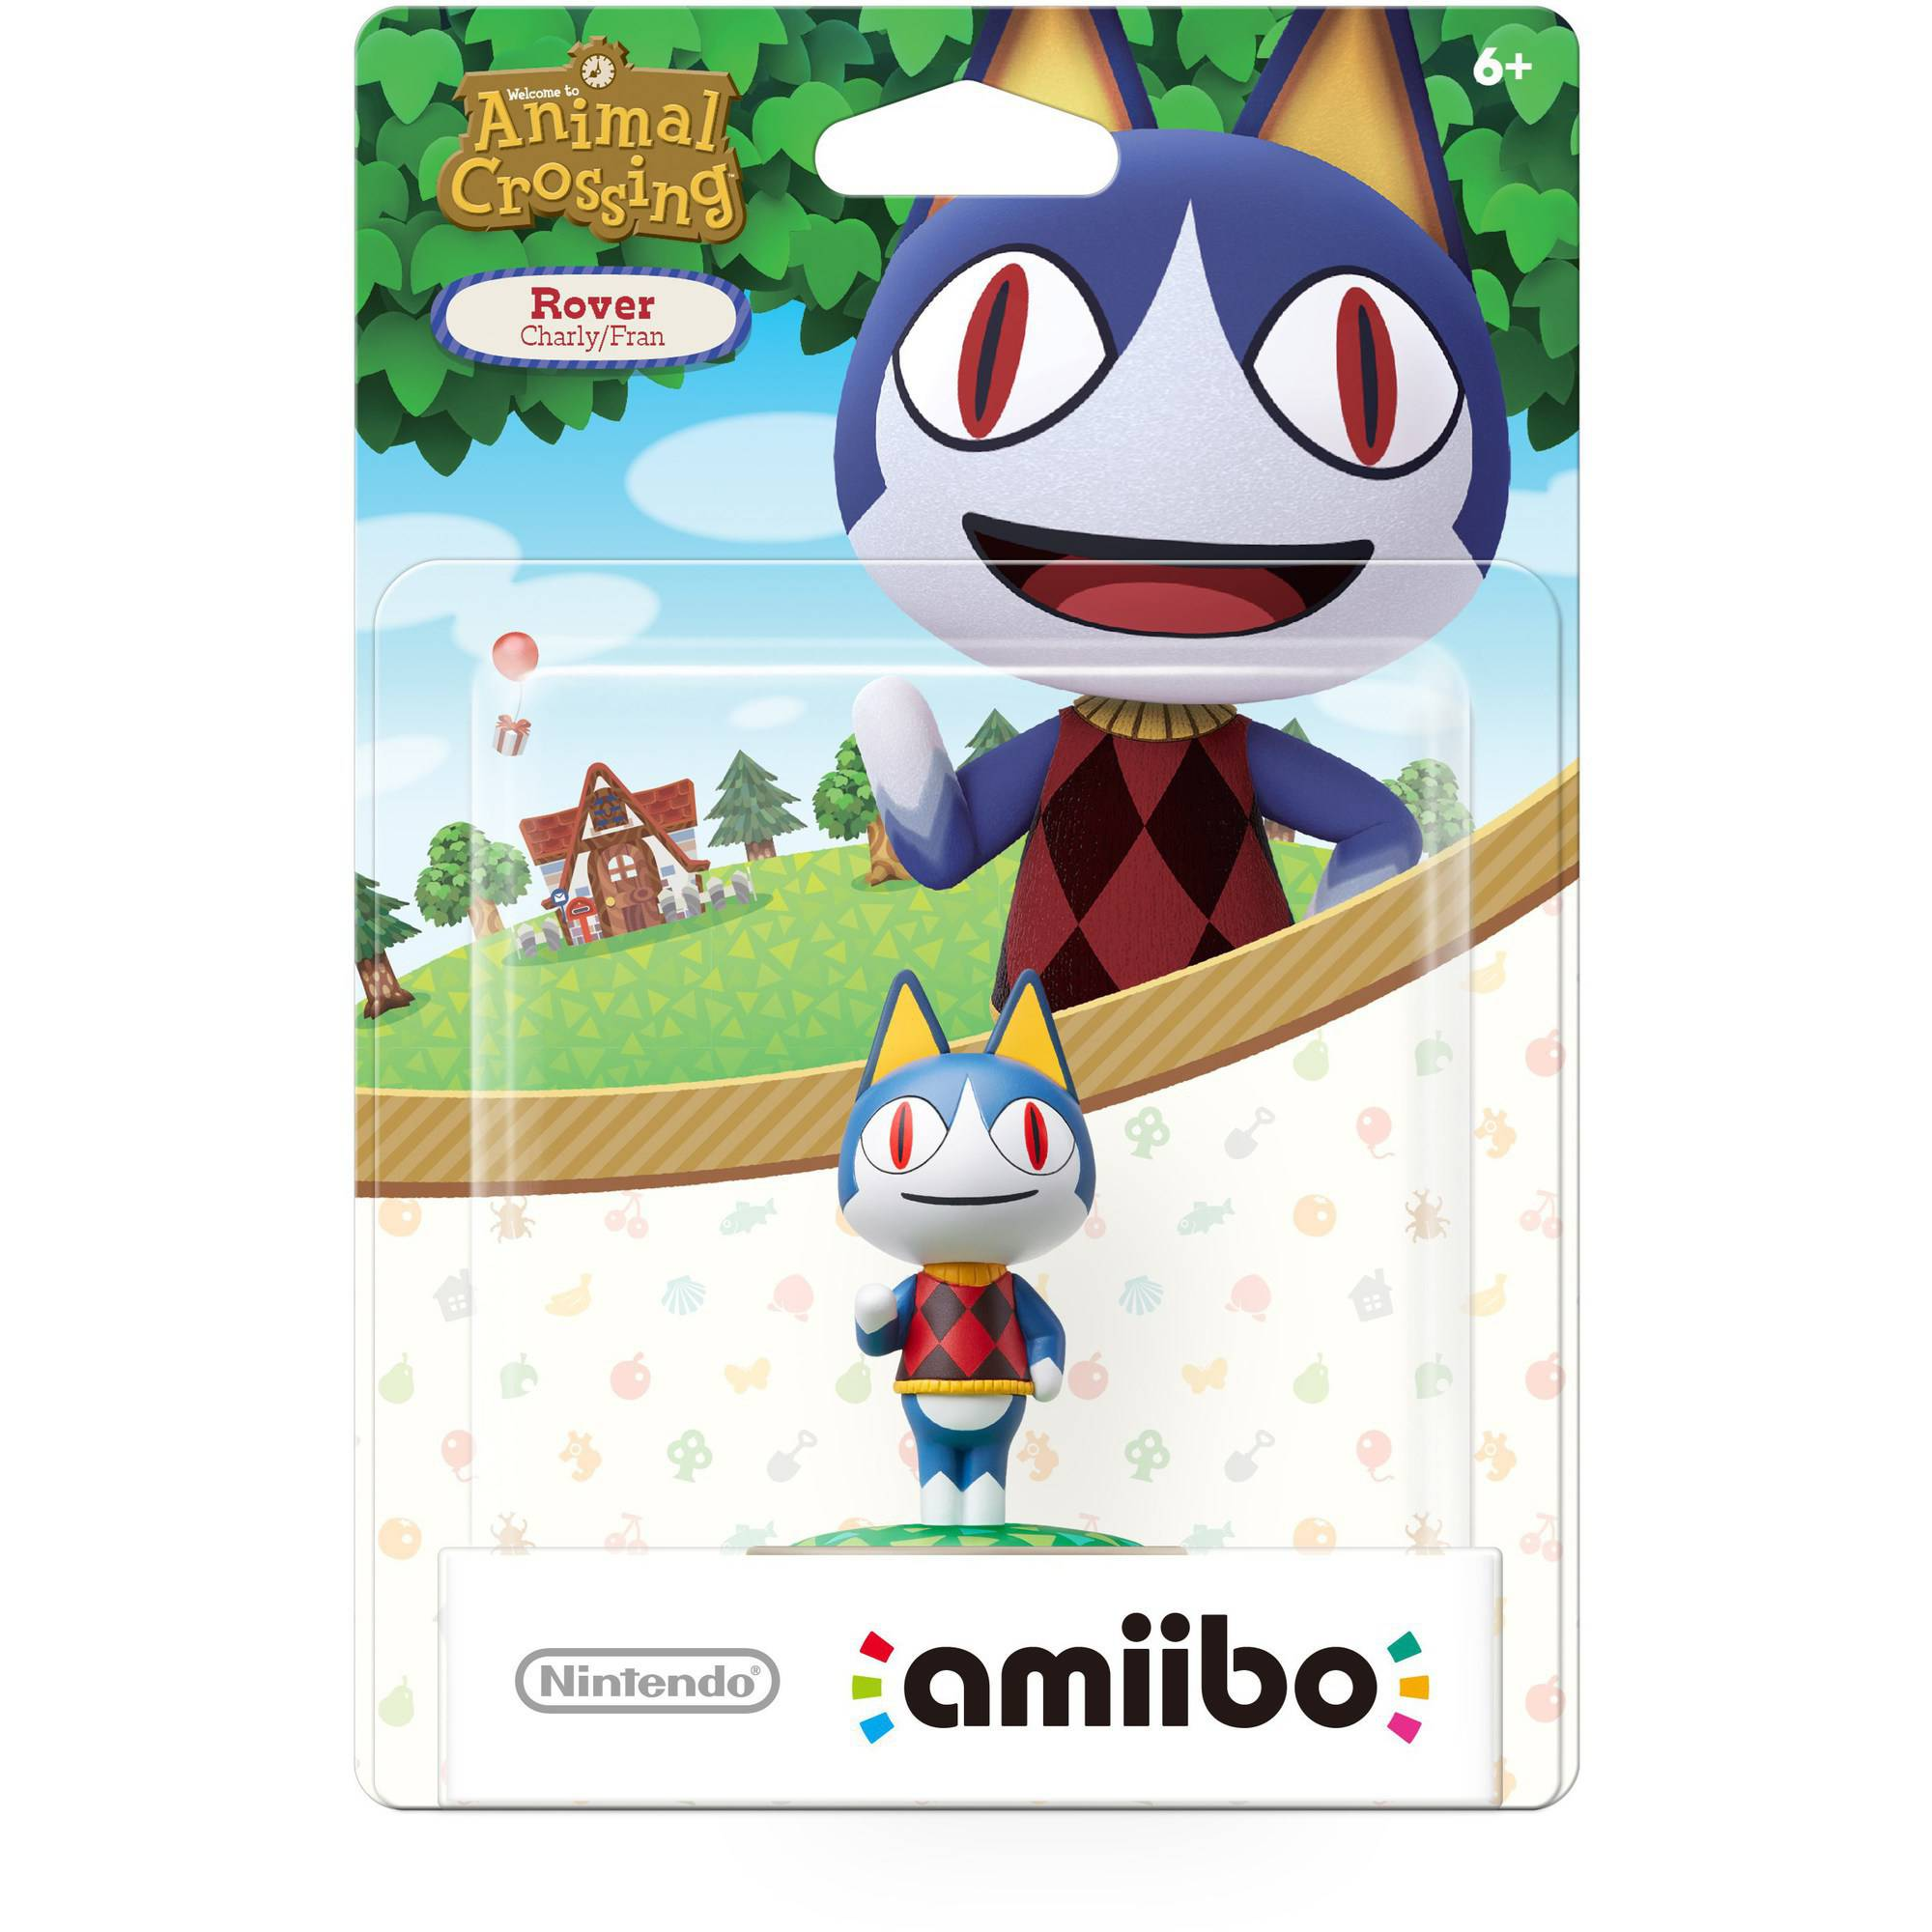 Rover, Animal Crossing Series, Nintendo amiibo, NVLCAJAP